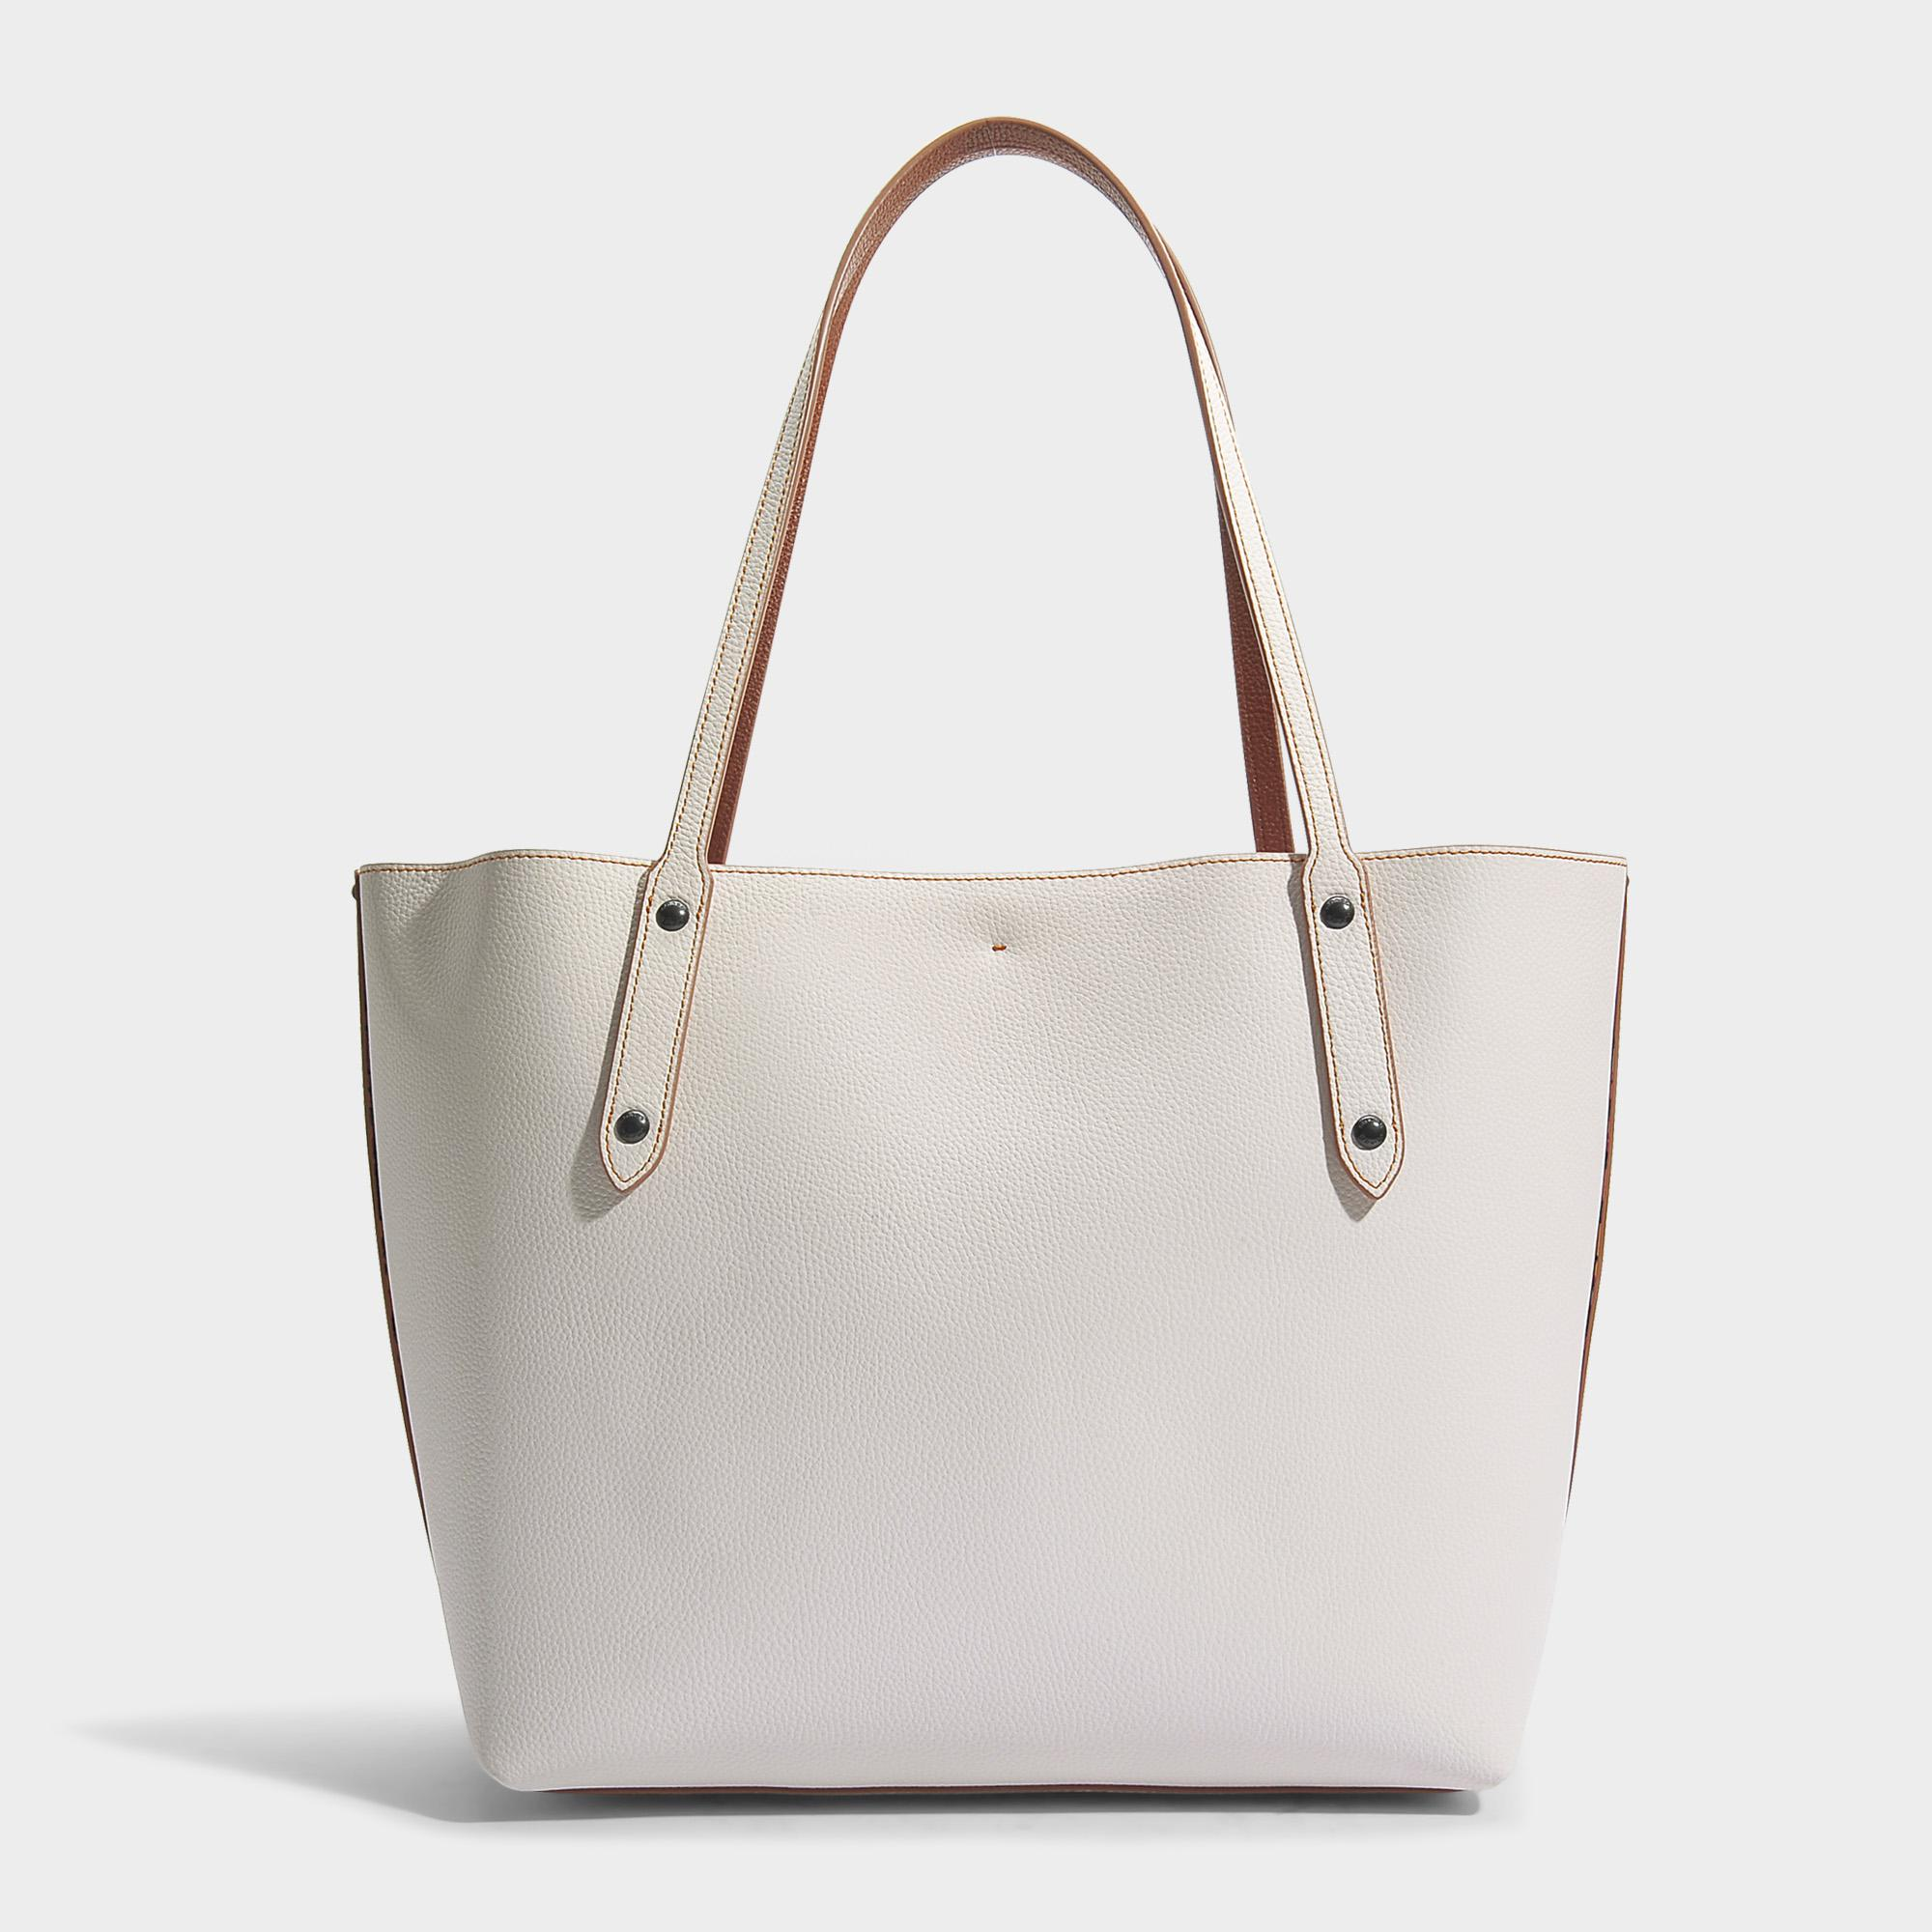 COACH Market Tote Bag In Chalk Leather